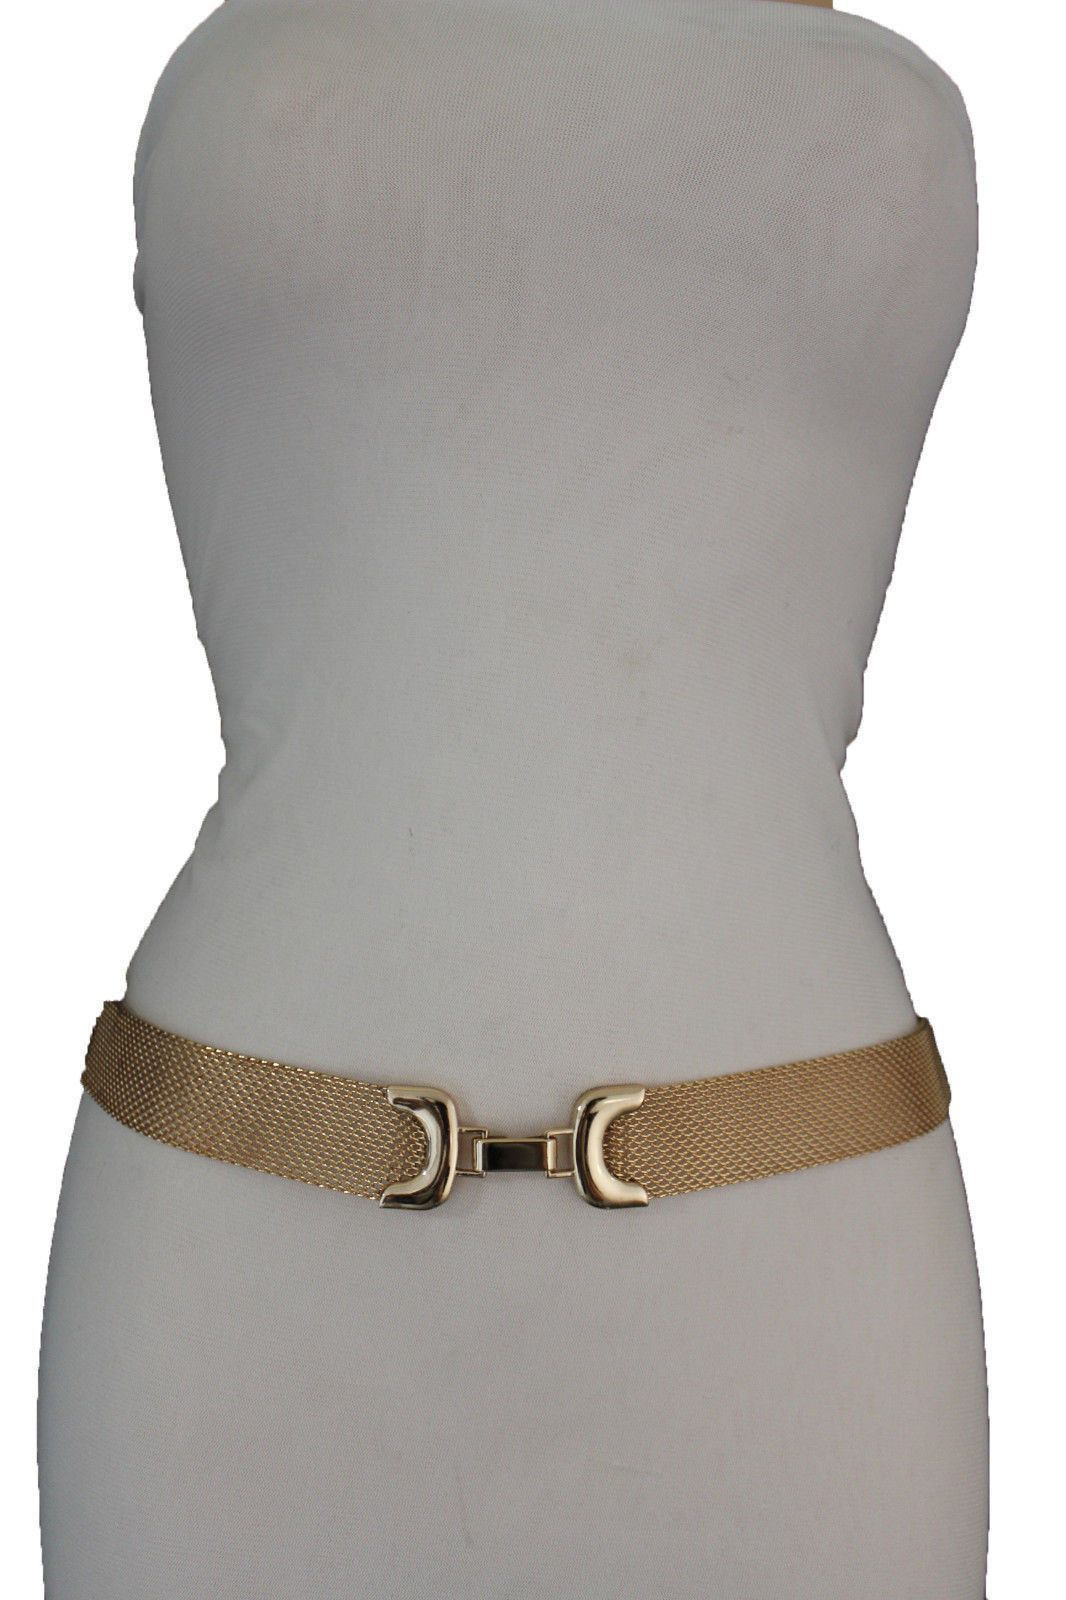 New Women White Wide Fashion Elastic Waisted Belt Silver Metal Chain Buckle S M